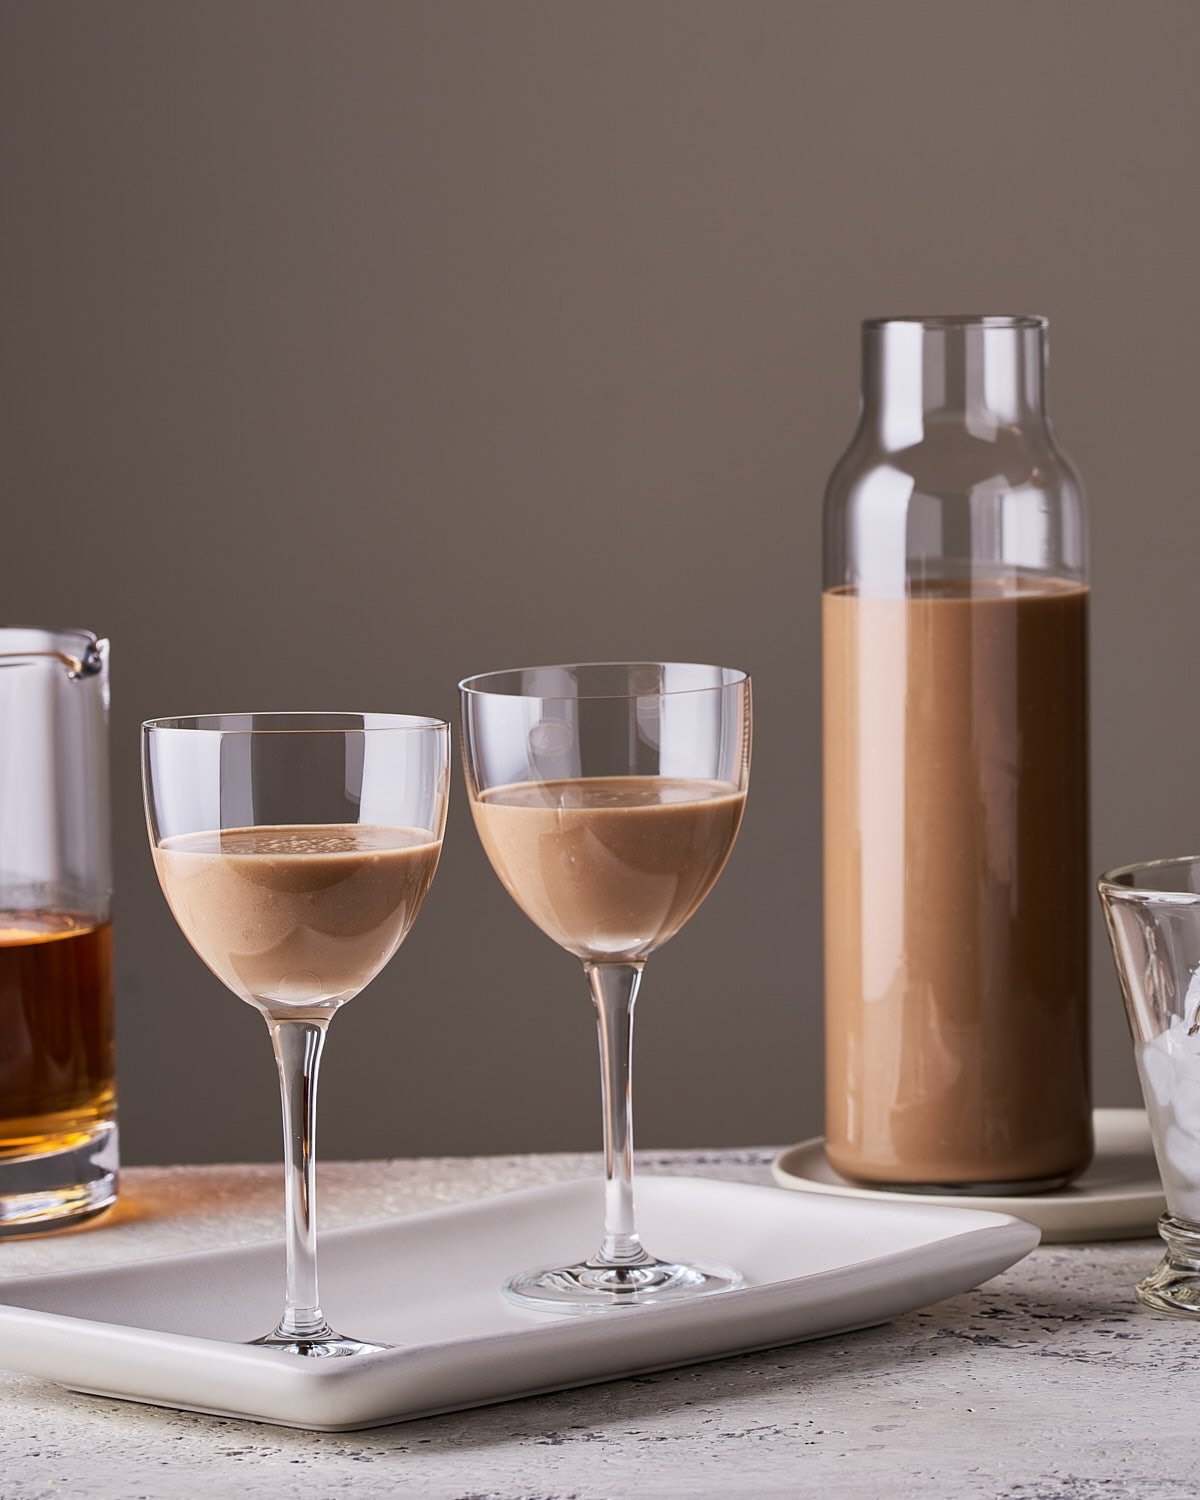 side view of 2 glasses of vegan Irish cream with glass bottle and pitcher